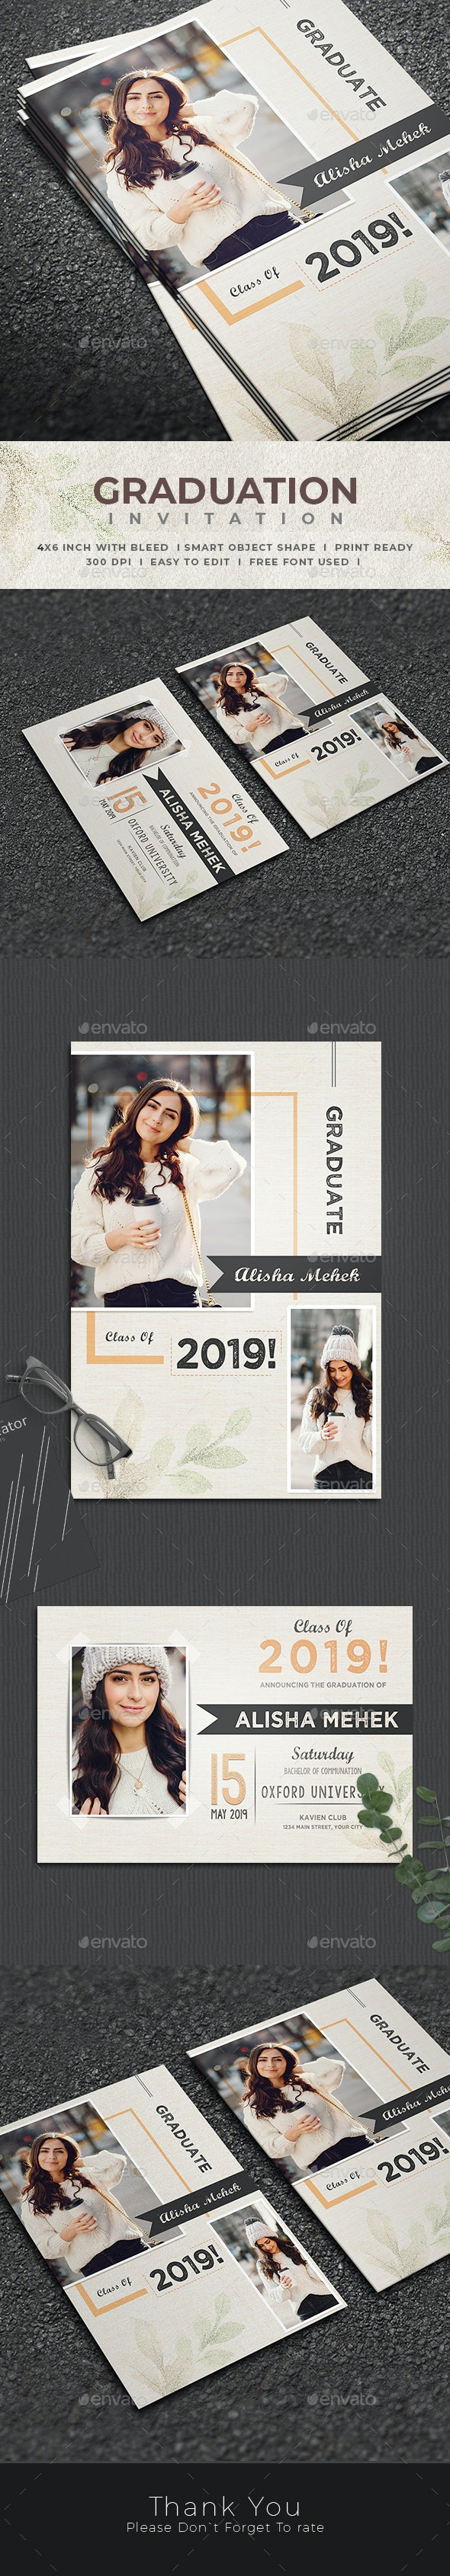 Graduation Invitation - Invitations Cards & Invites